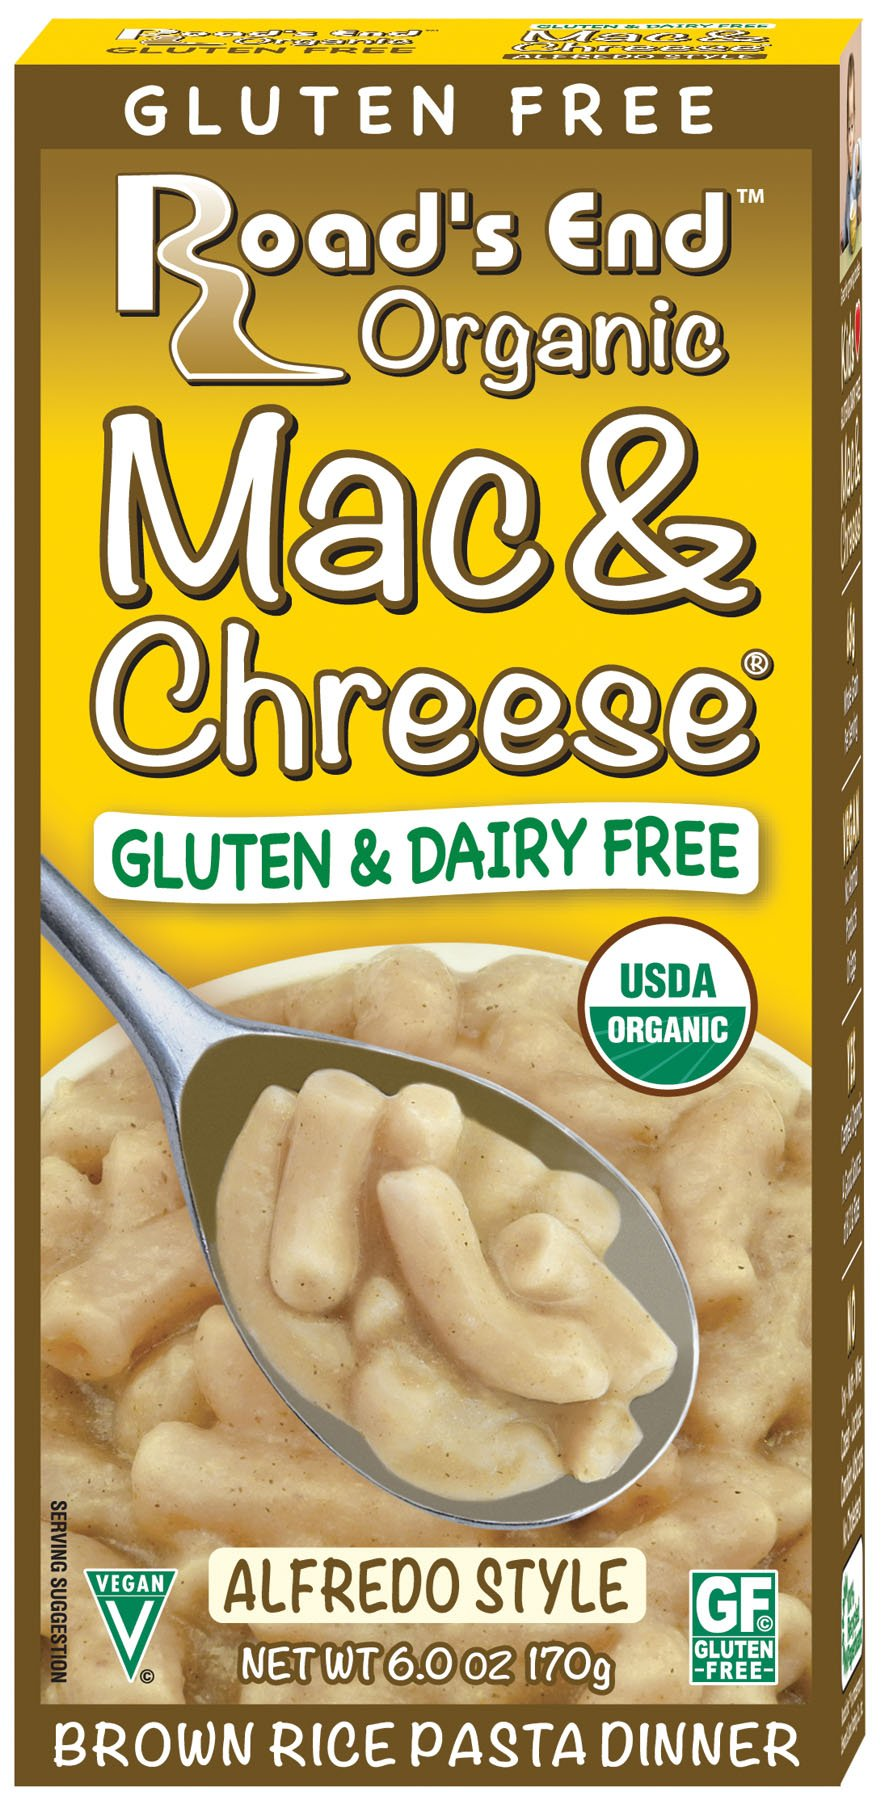 Road's End Organics Gluten Free Mac & Chreese Alfredo Style, Organic, 6-Ounce Boxes (Pack of 12) by Road's End Organics